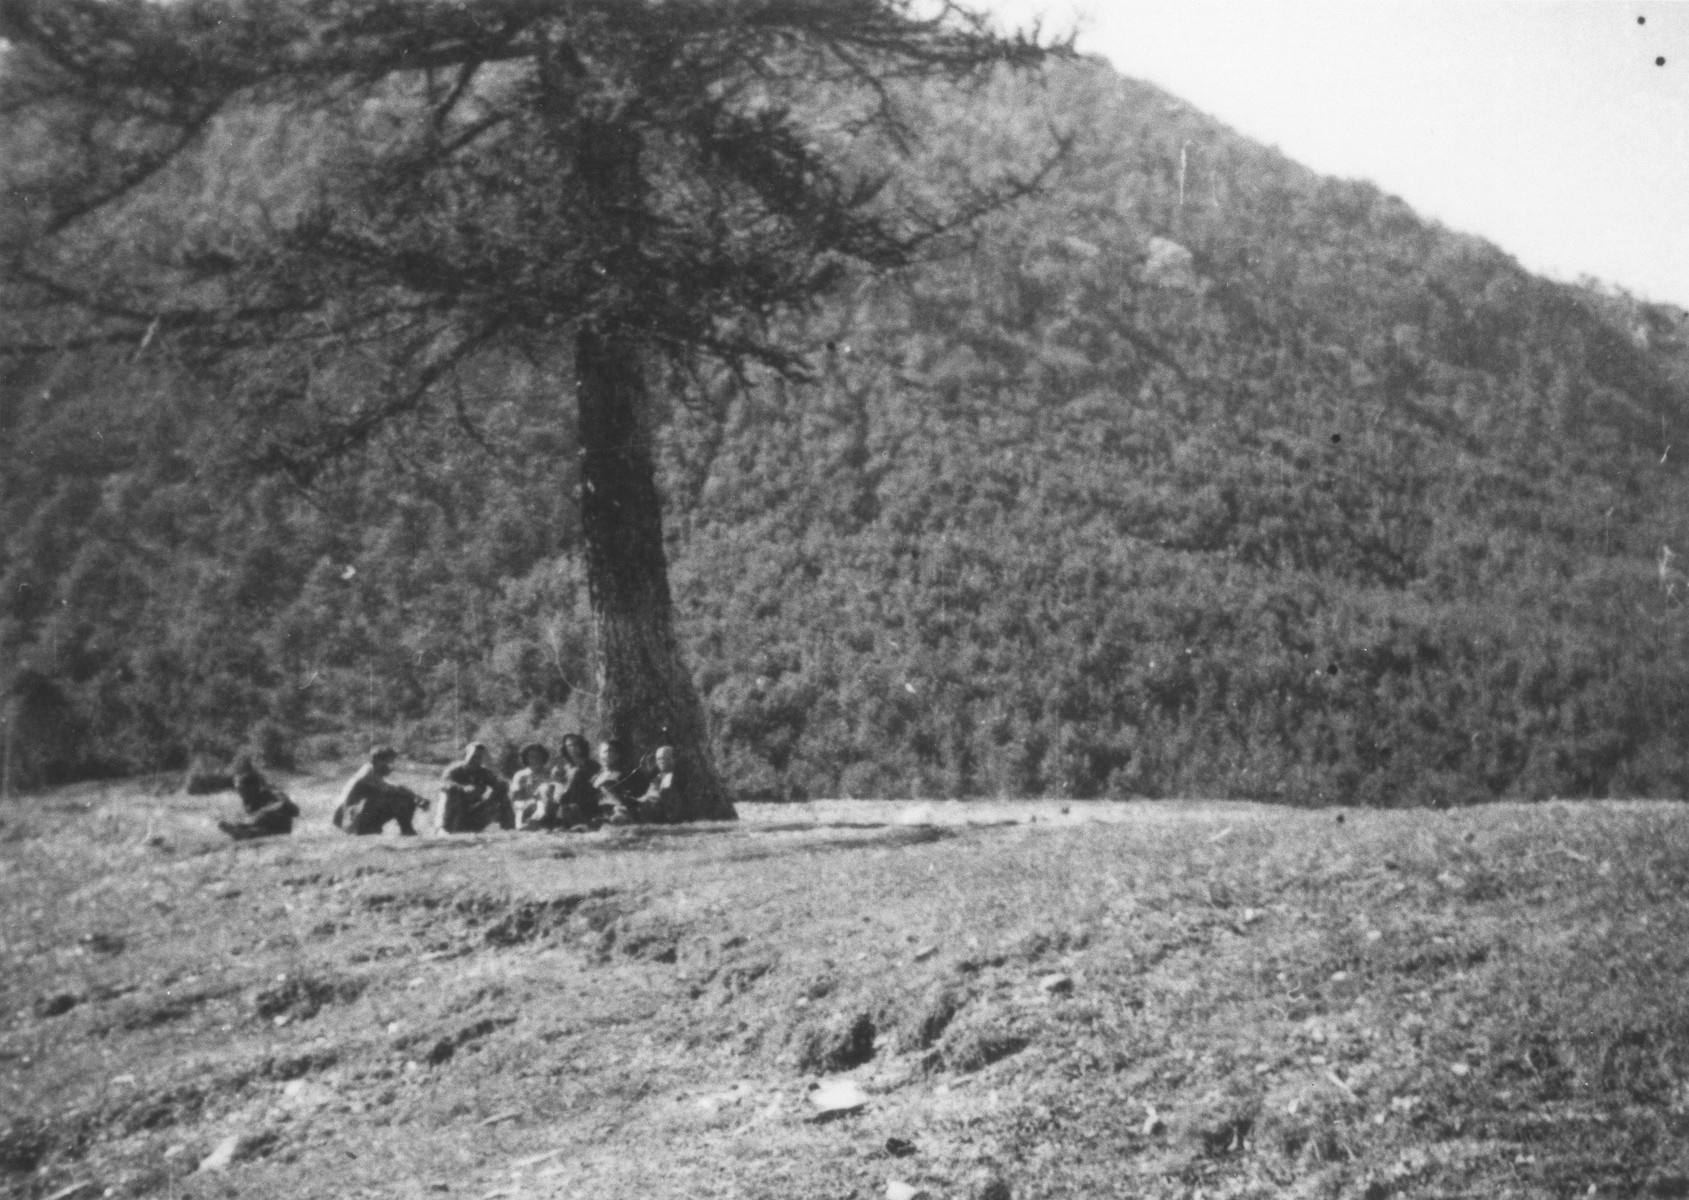 Jewish refugees rest under a tree during their escape over the Alps to Italy from the Italian-occupied zone in France following the signing of the Italian armistice.